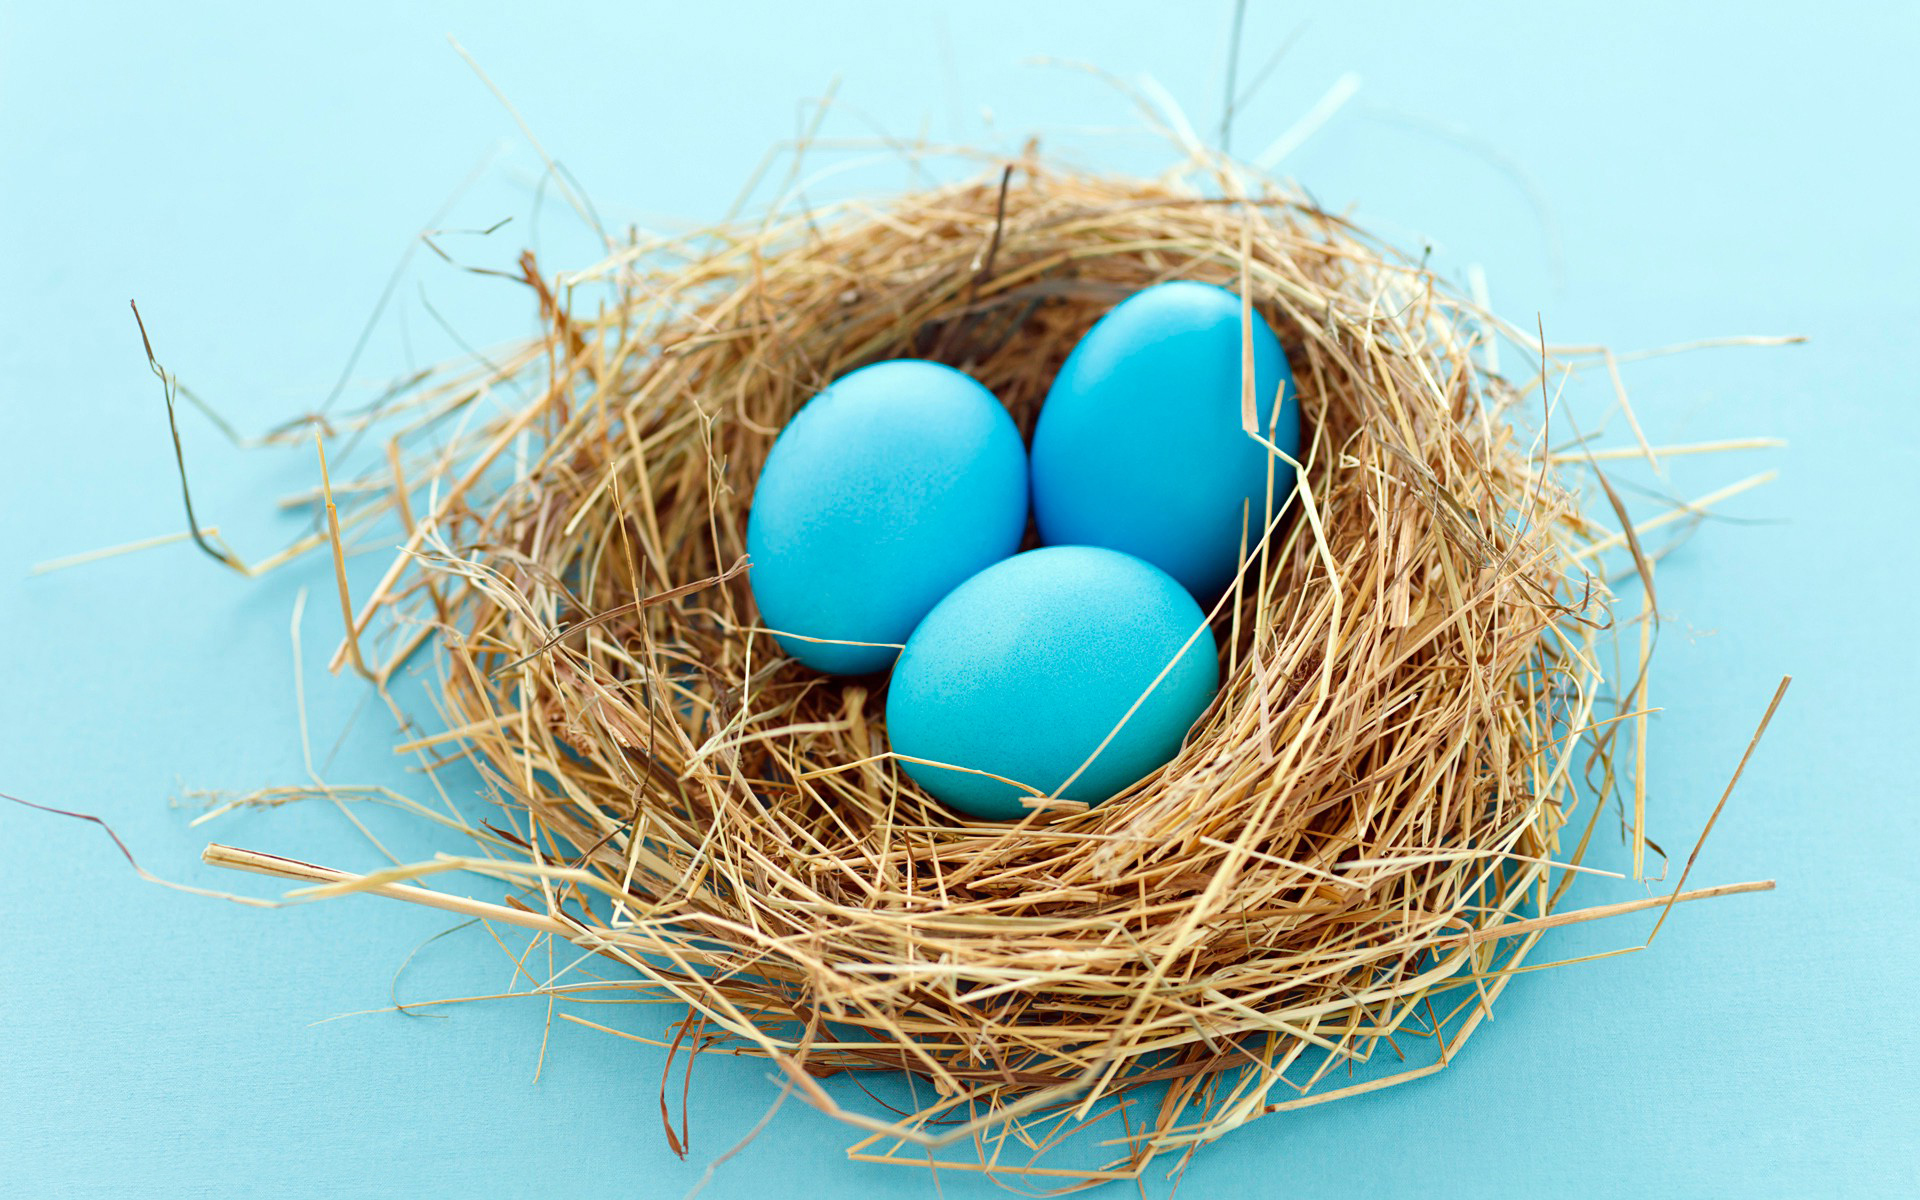 Nest with Eggs wallpaper